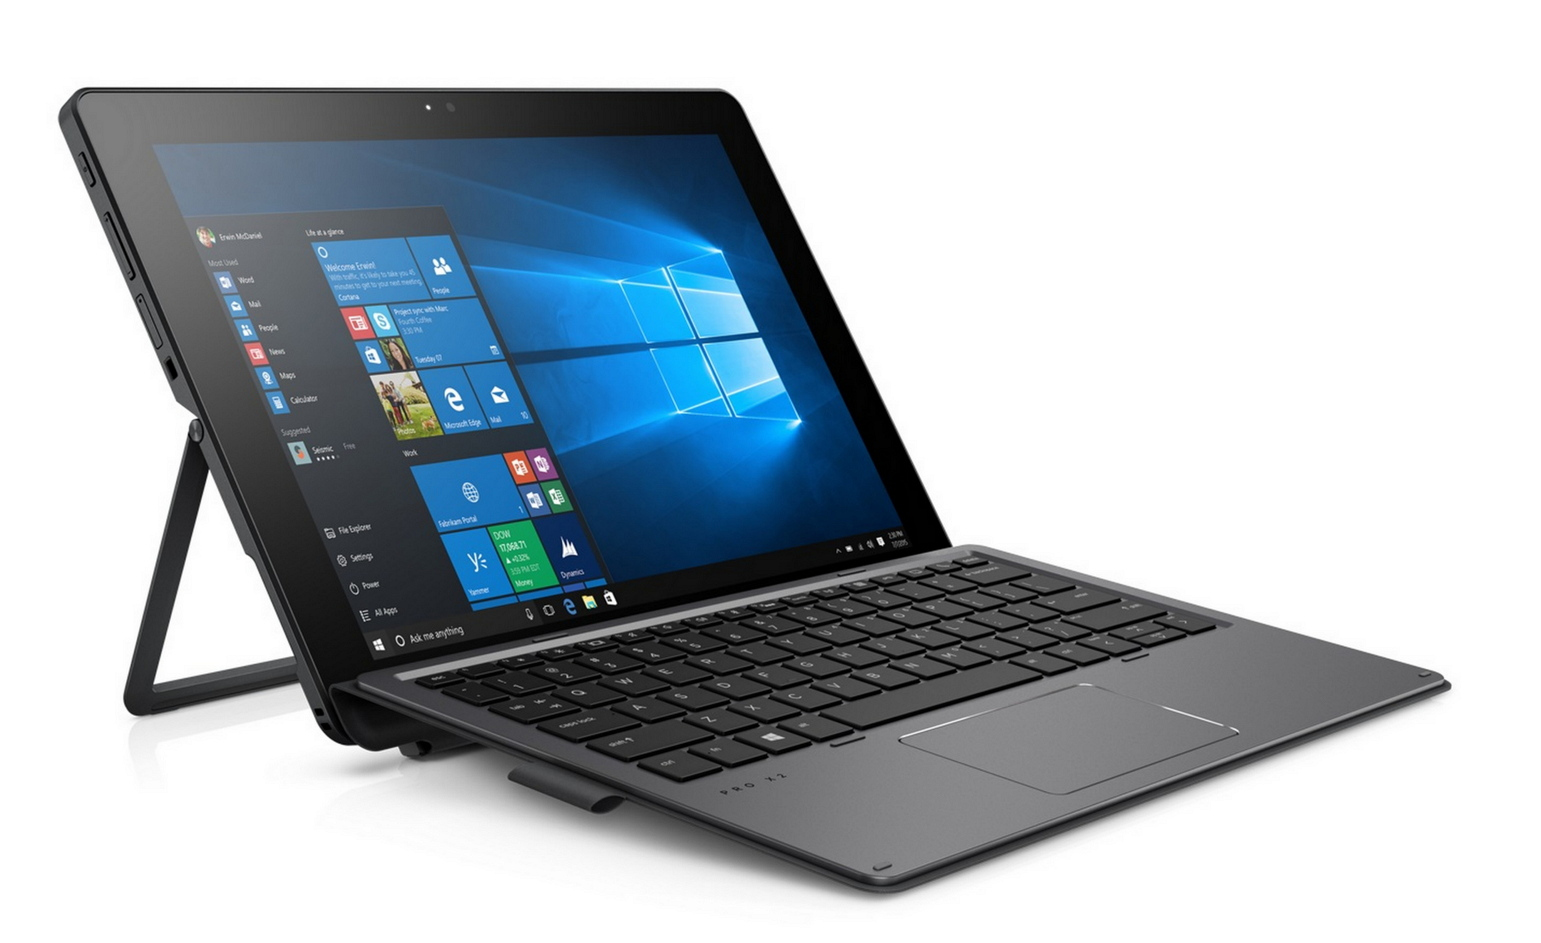 Hp Pro X2 612 G2 Is An New Upgradable Tablet Running